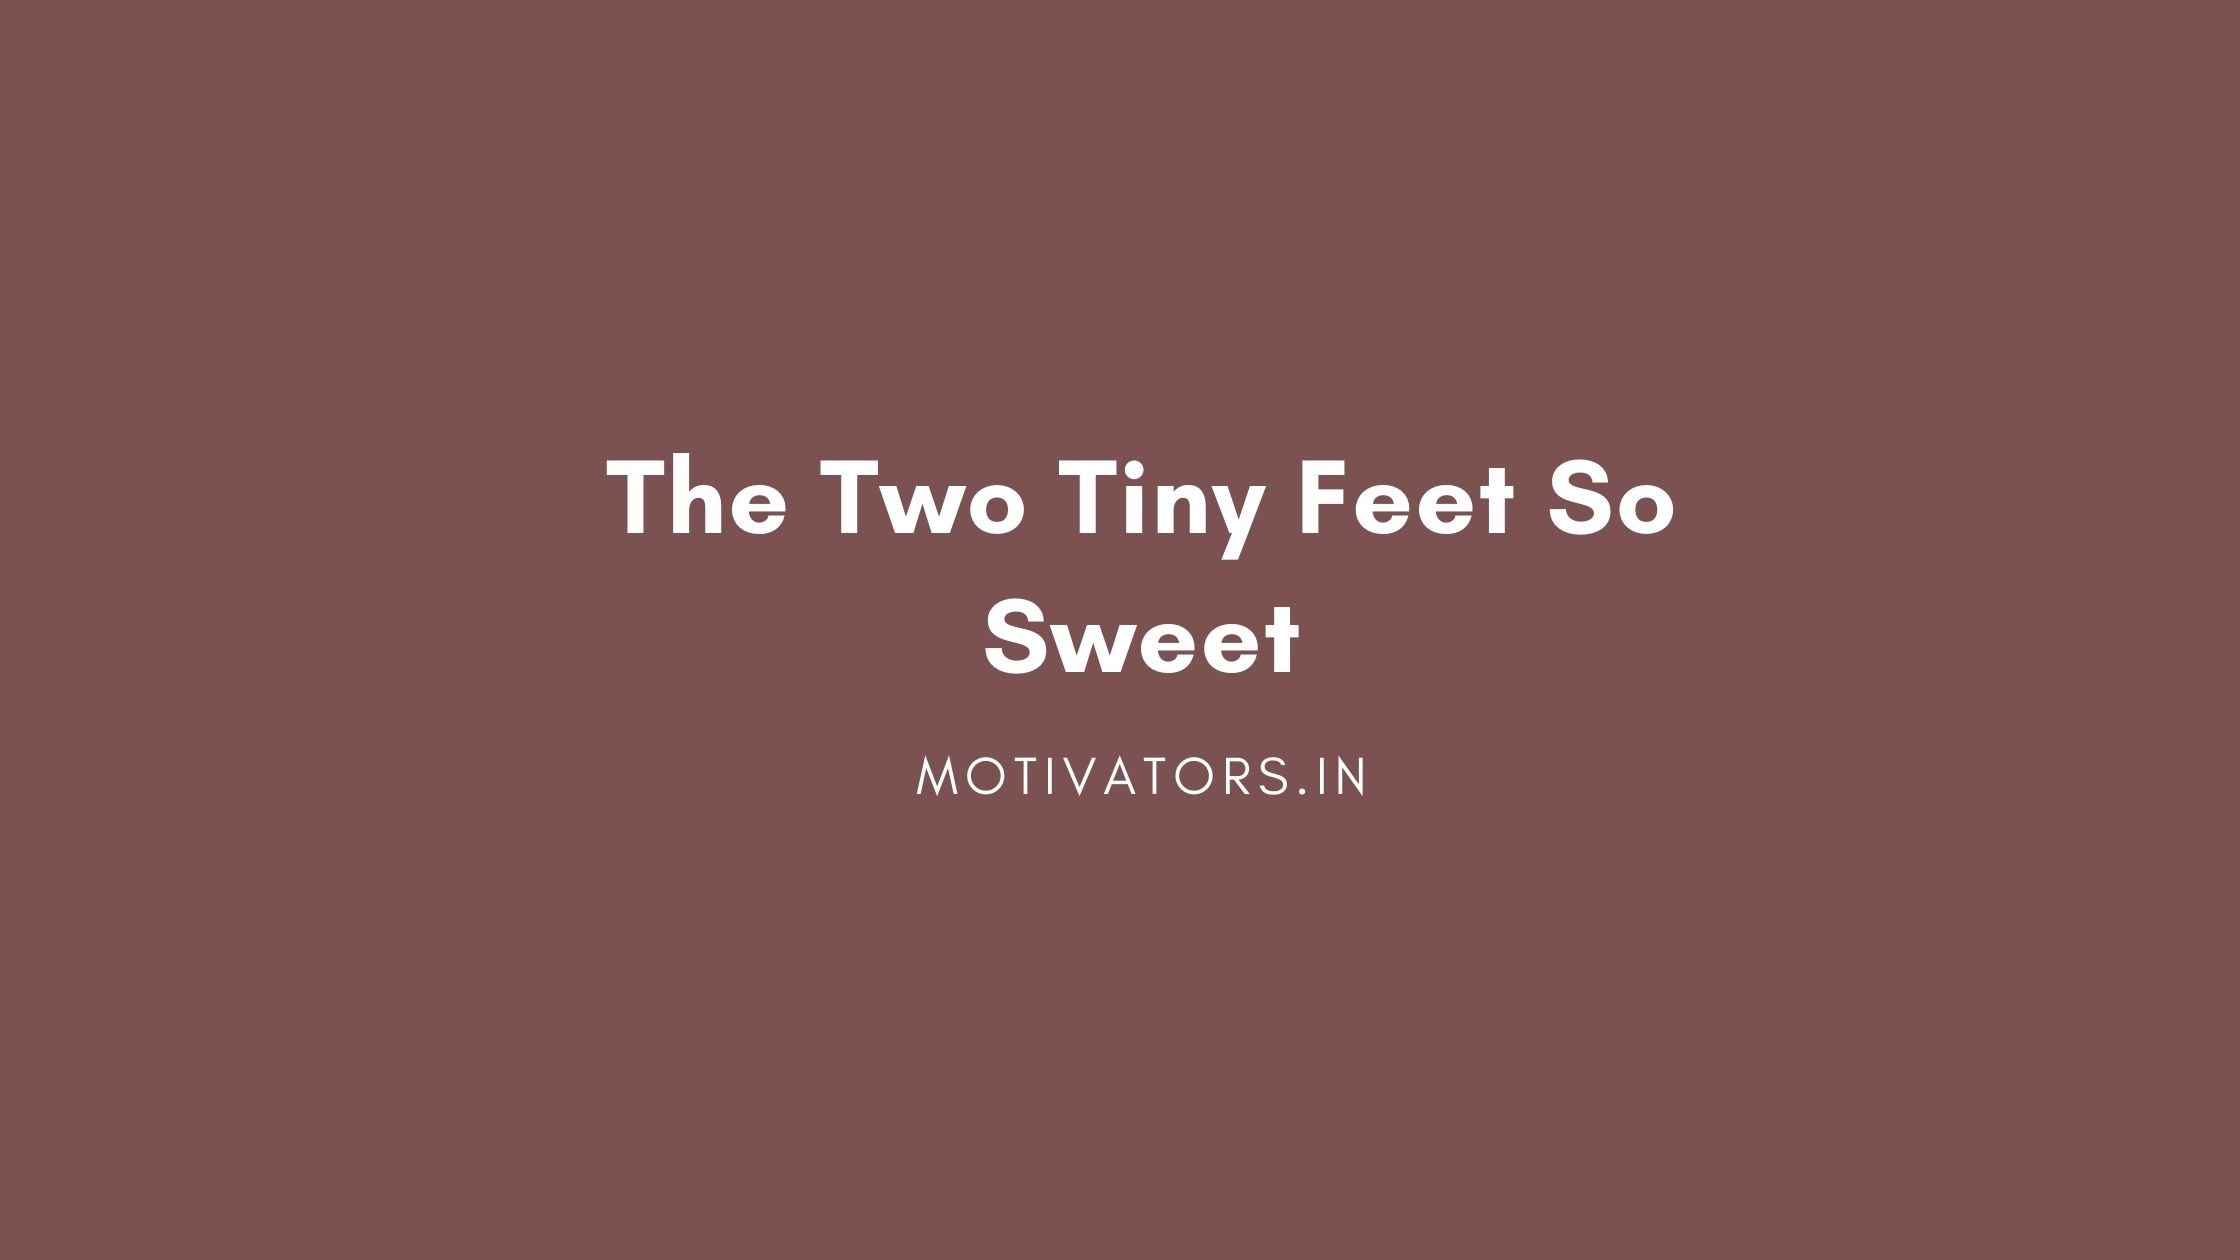 The Two Tiny Feet So Sweet